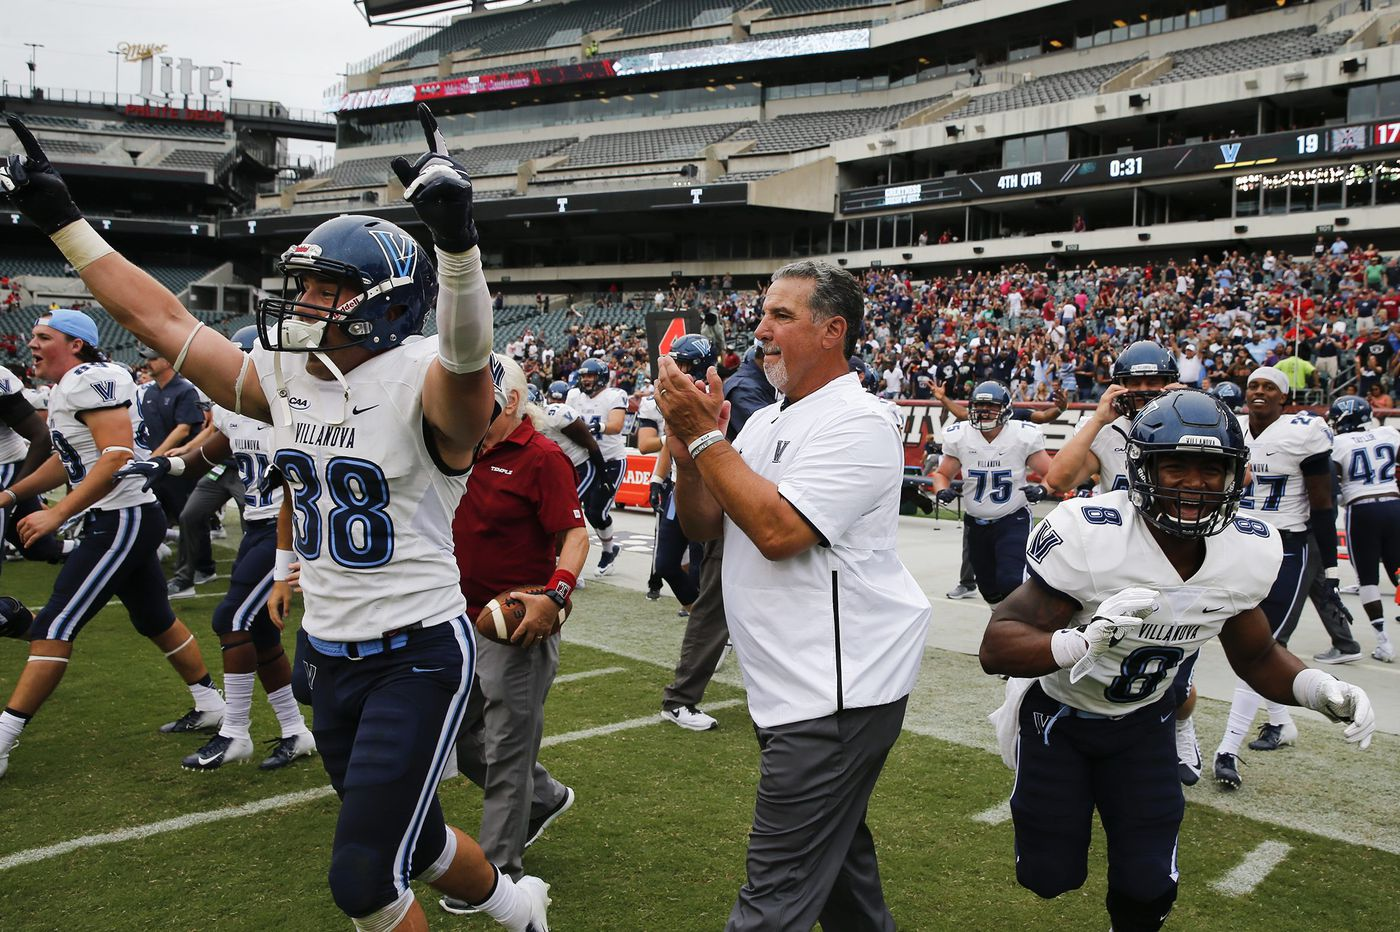 Villanova has its day in college football upset over Temple | Mike Jensen